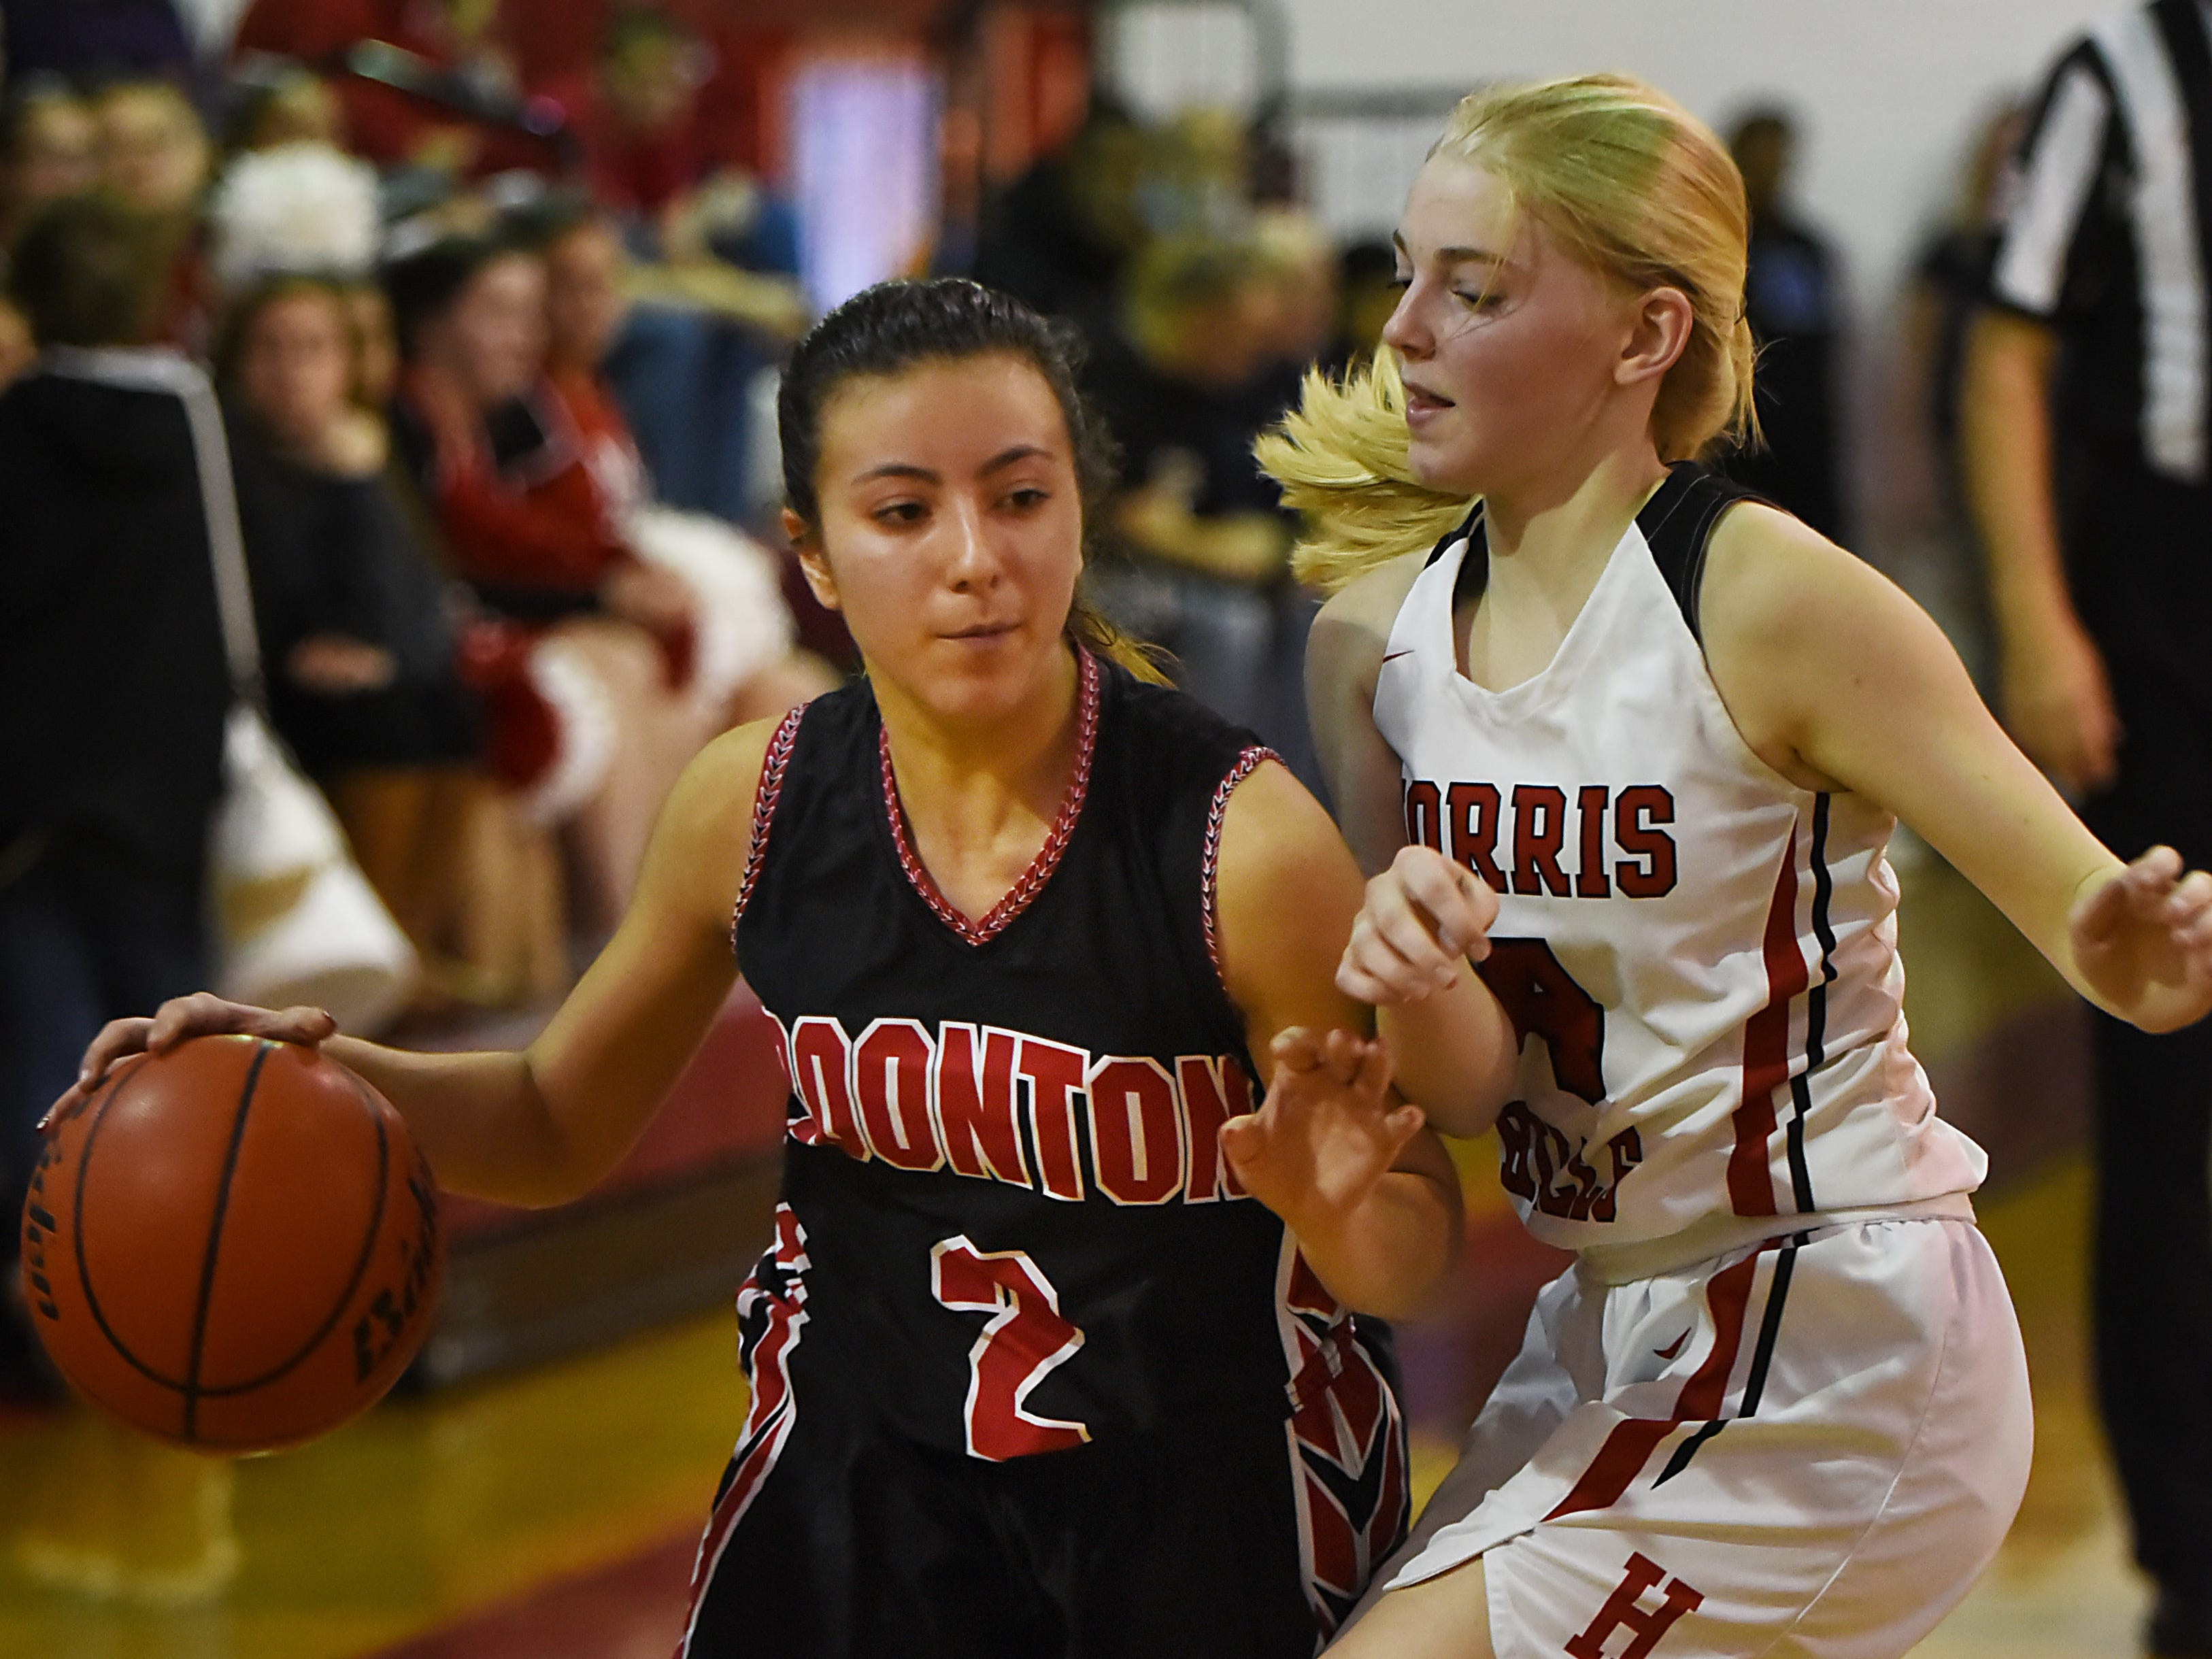 Boonton Vs. Morris Hills girls basketball game at the Morris Hills Holiday Tournament in Rockaway on Friday December 28, 2018. B#2 Sara Rios and MH#4 Maggie Lenahan.